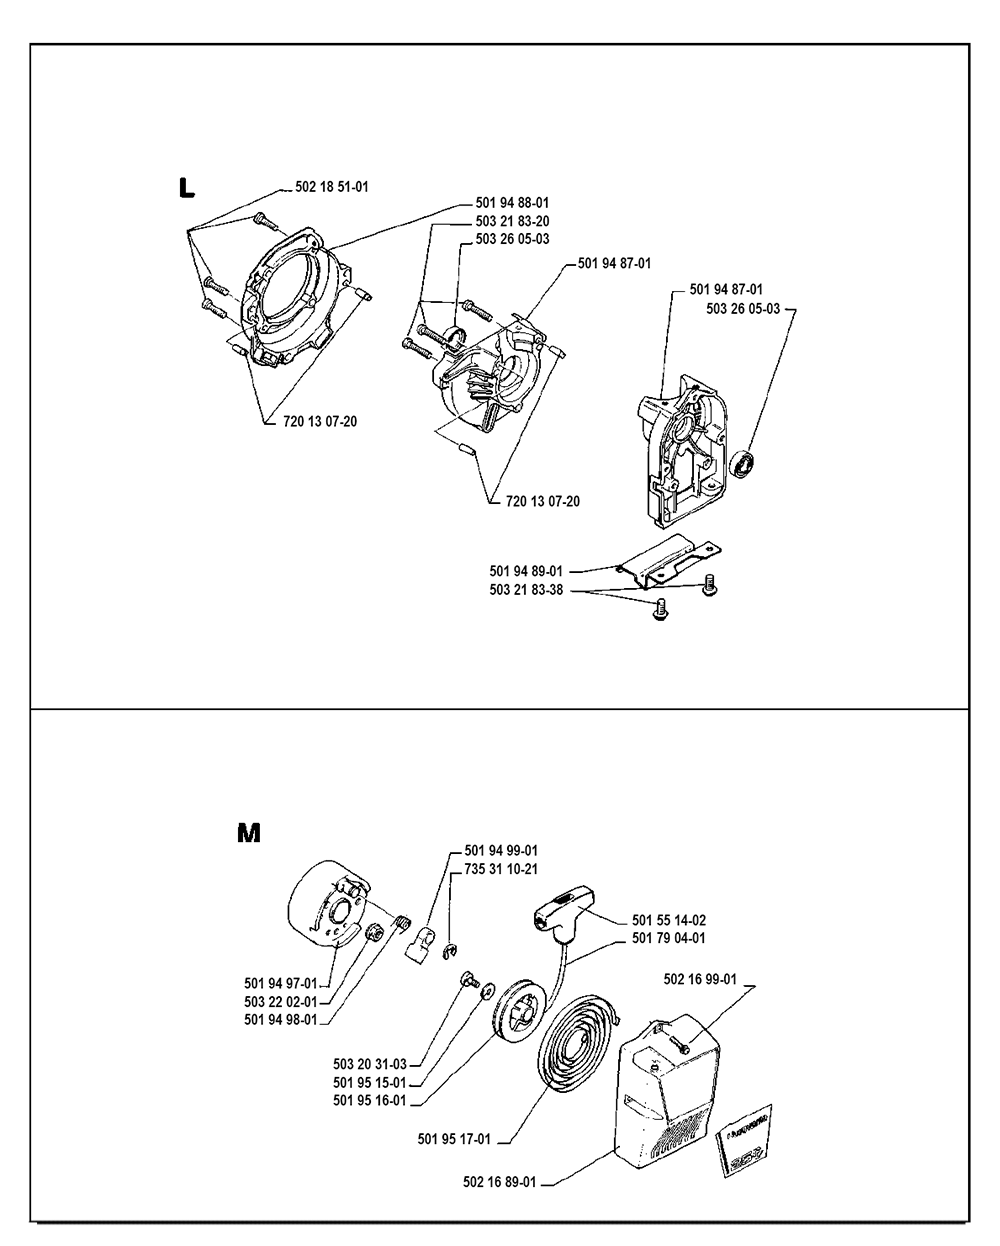 22 R-(I8900003)-Husqvarna-PB-4Break Down